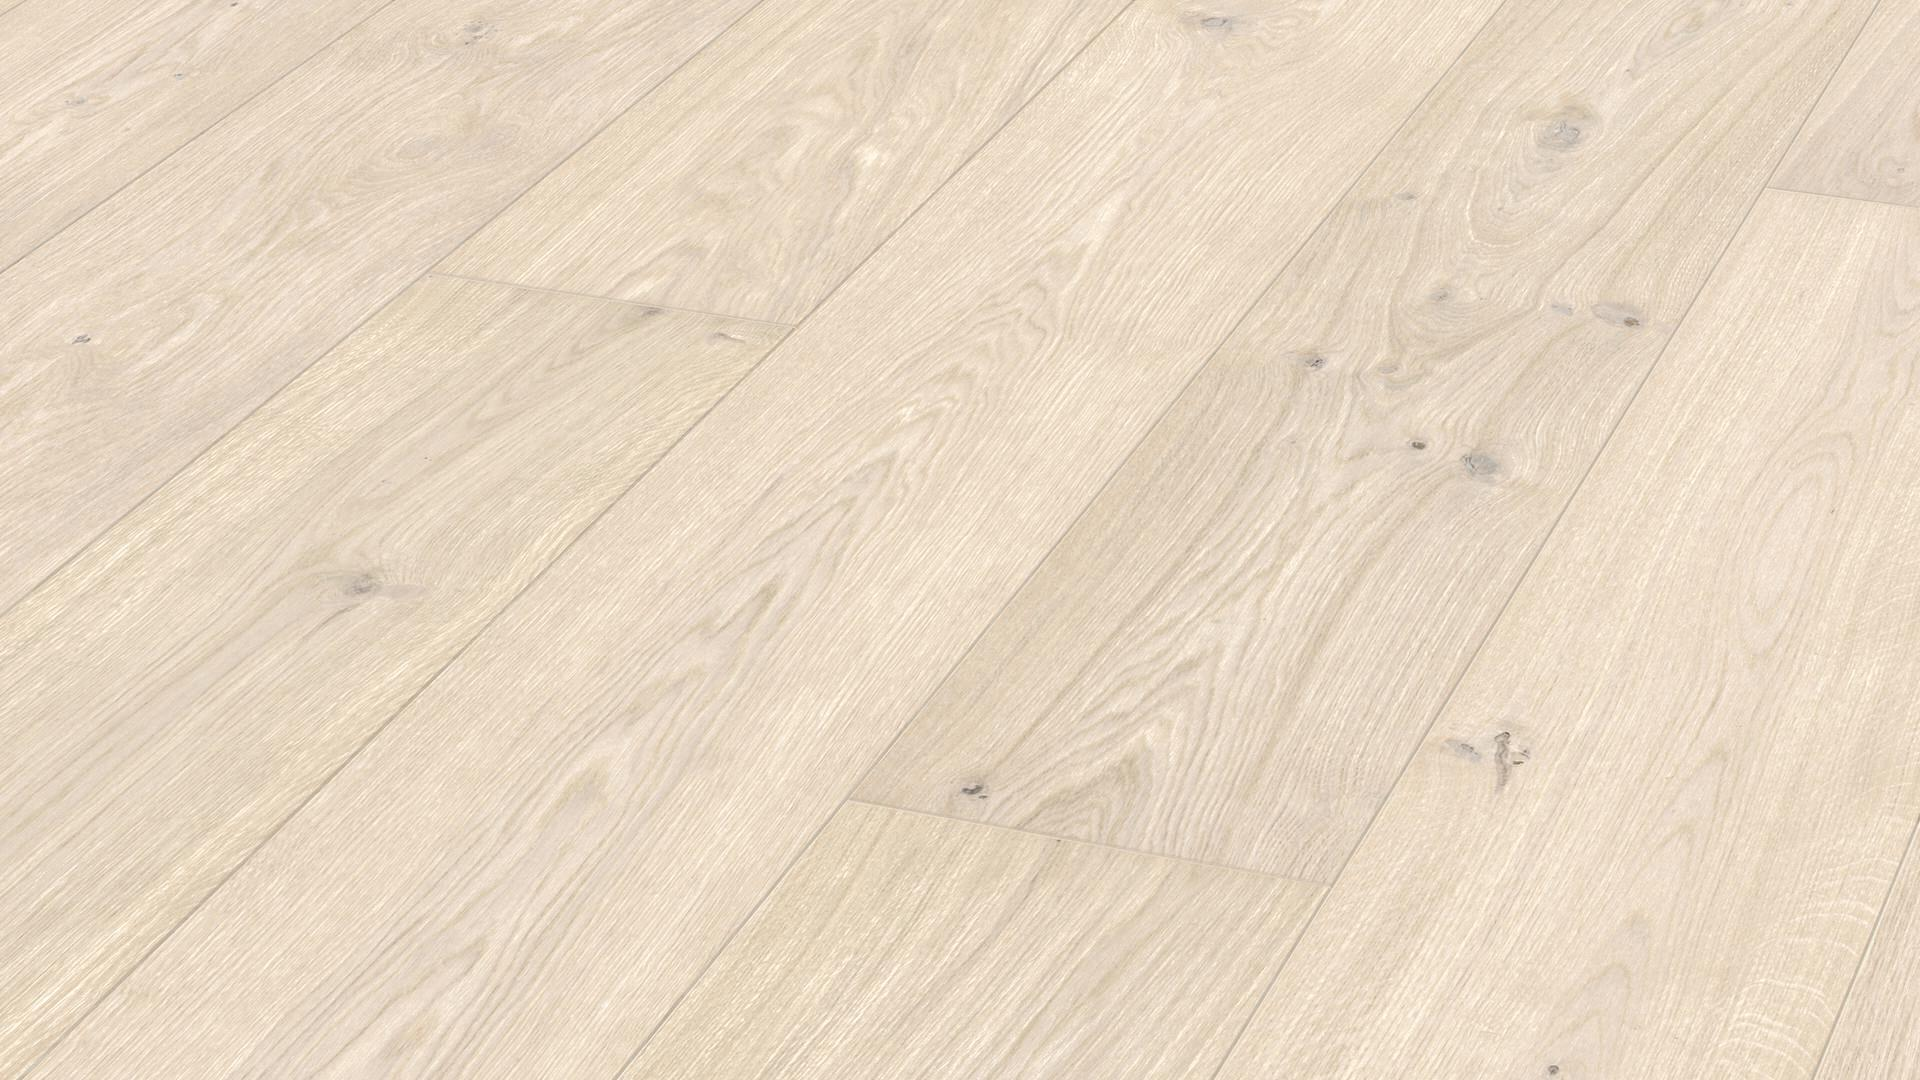 Parquet flooring MeisterParquet. longlife PD 450 Limed white oak lively 8594